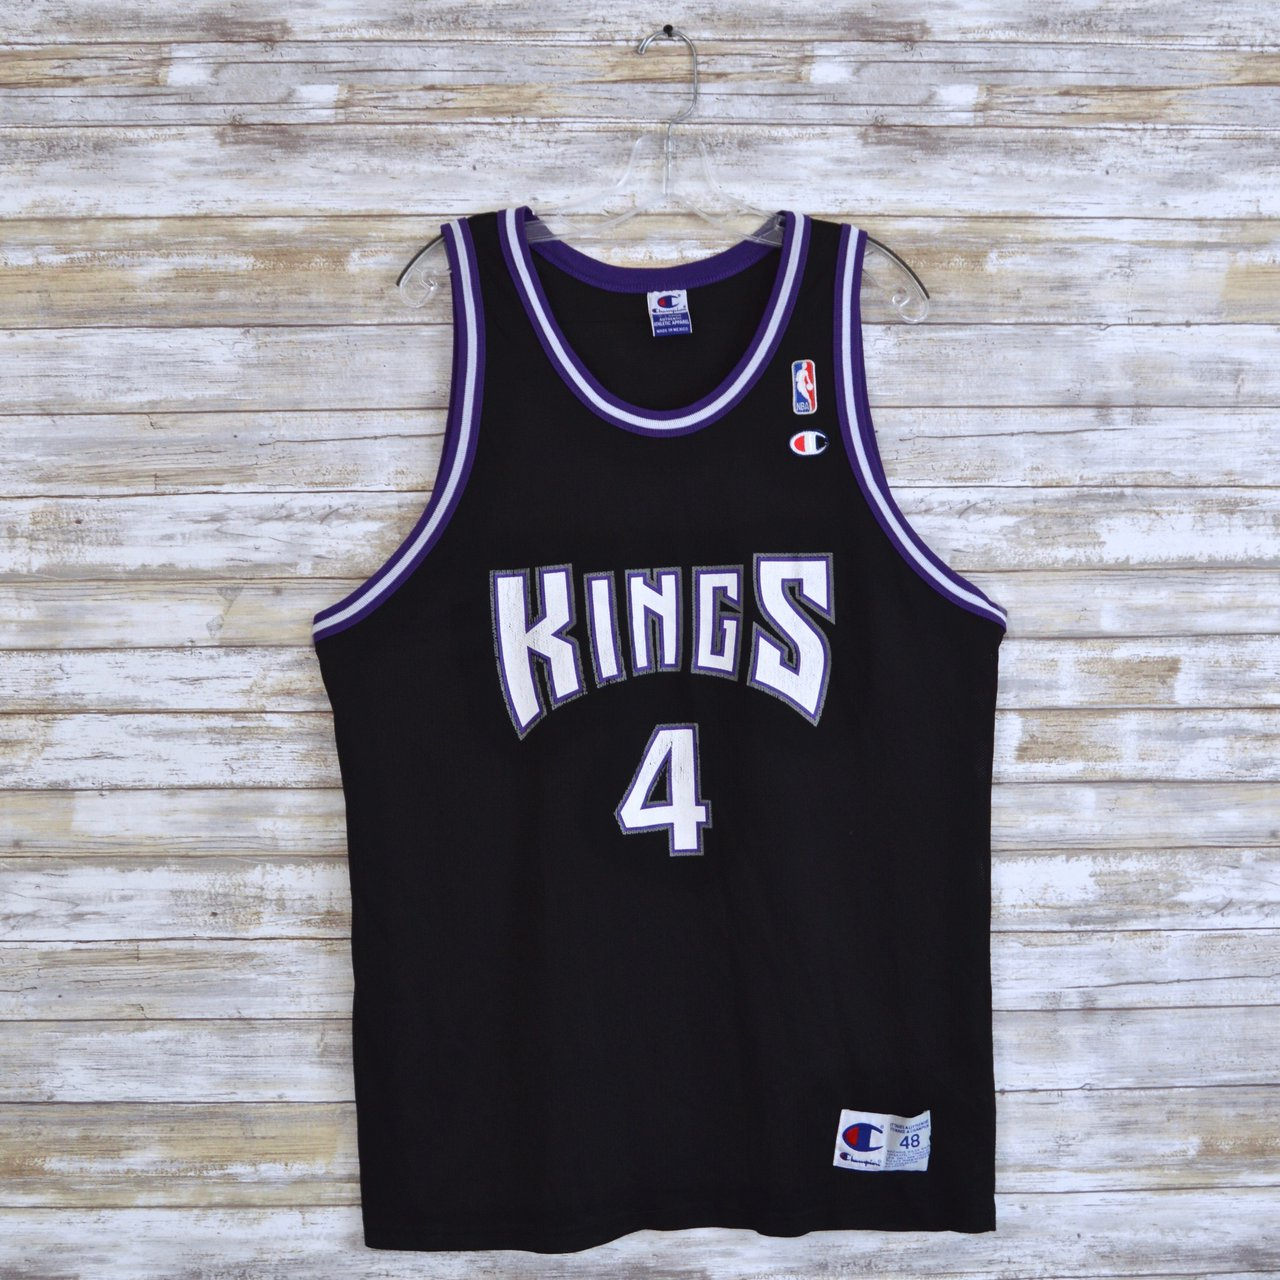 cc5fd6feeeb6 Vintage NBA Sacramento Kings Jersey Chris Webber Champion XL - Depop